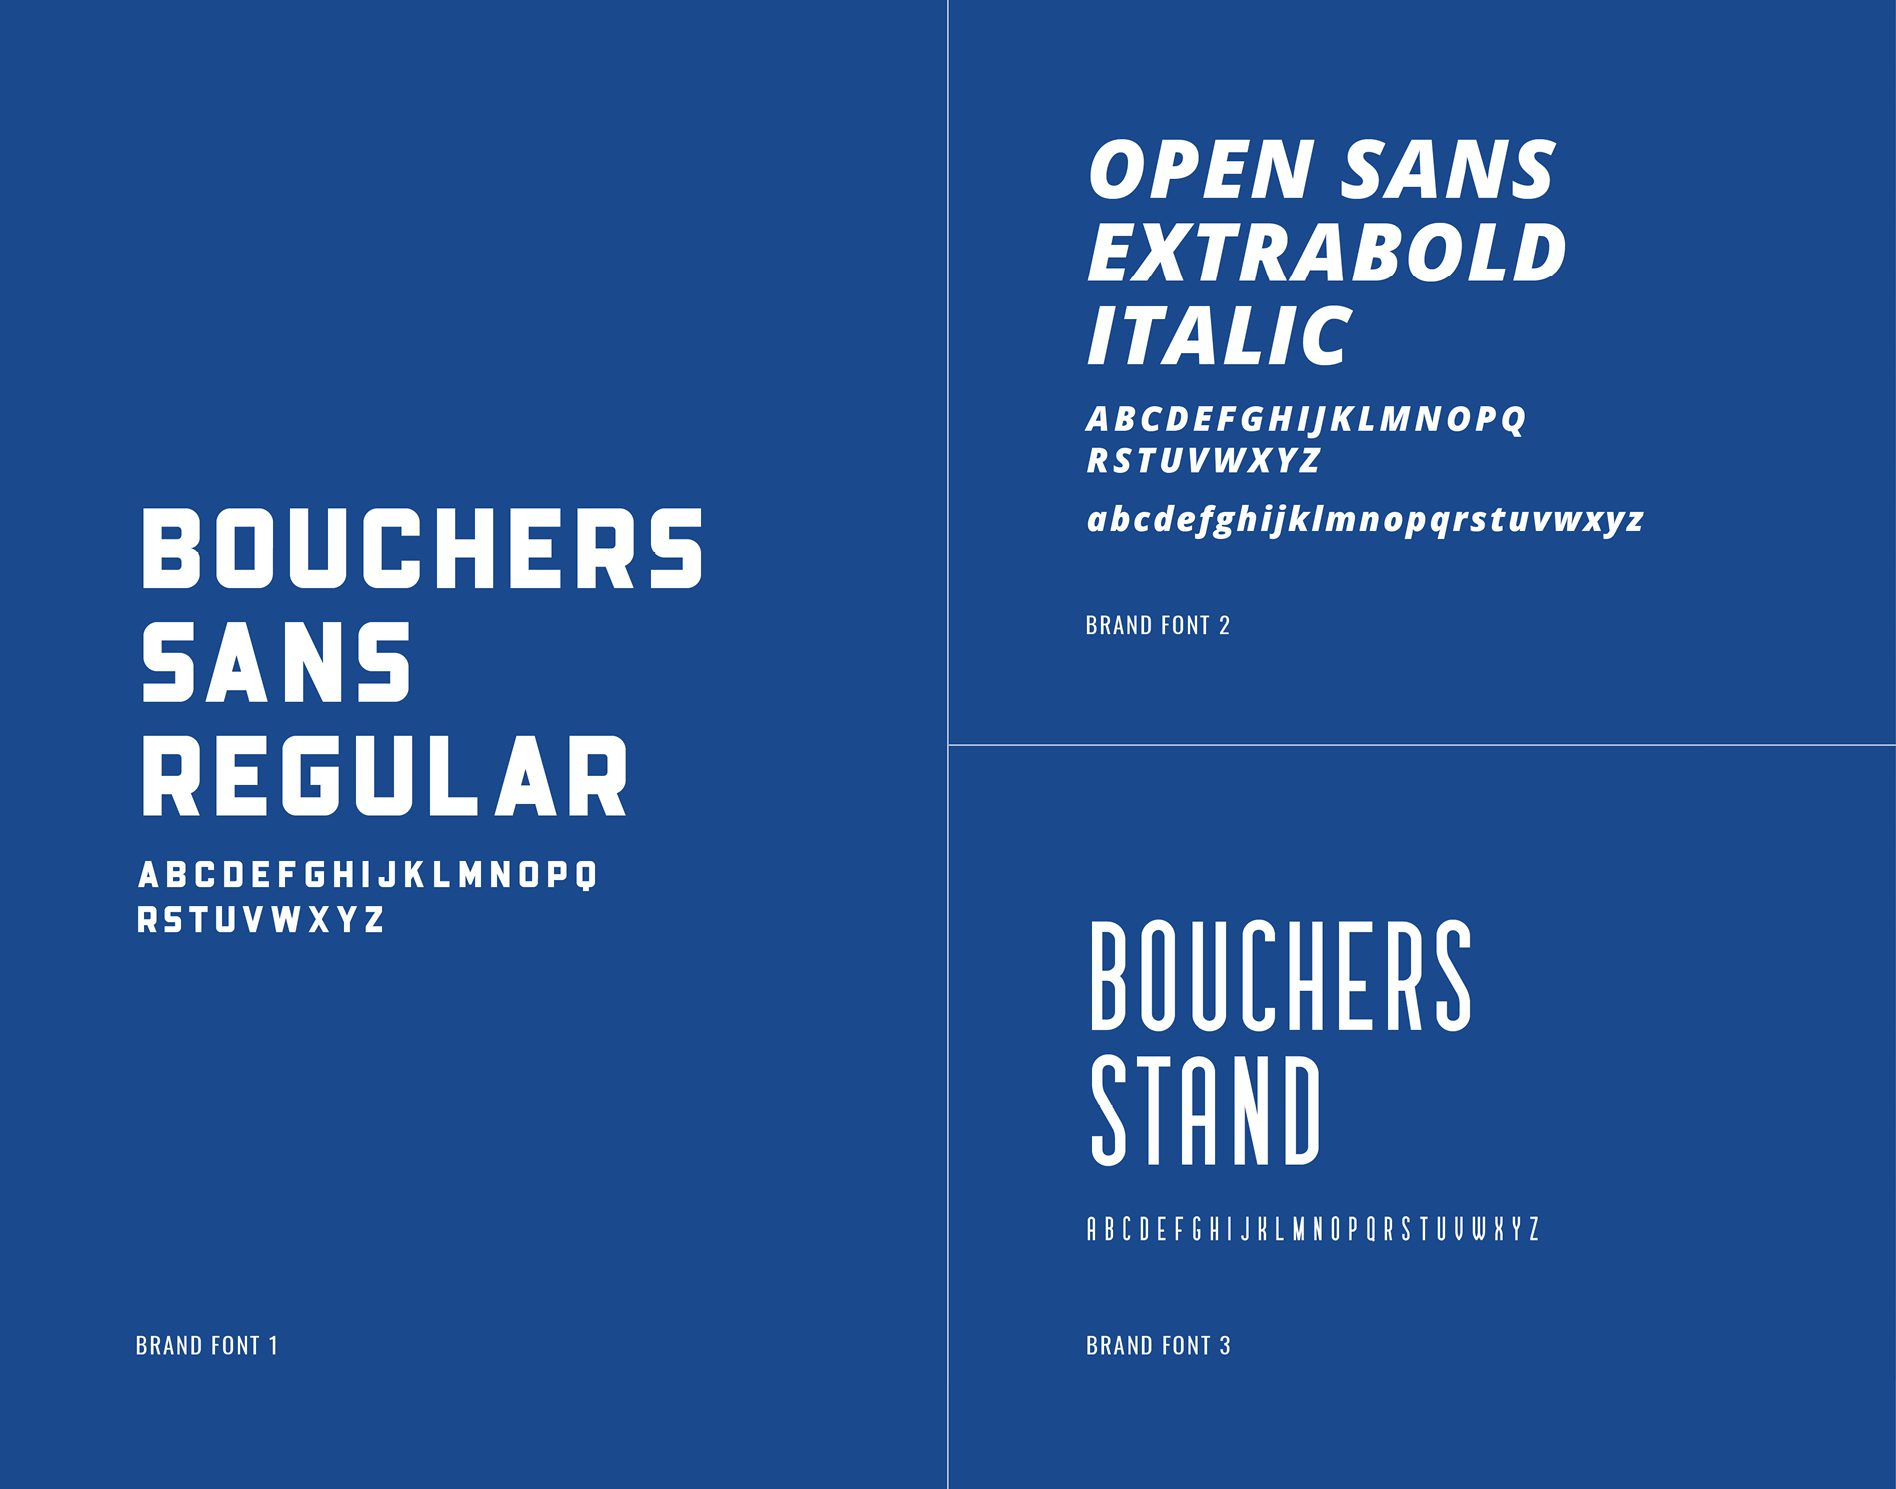 common branding terms brand fonts